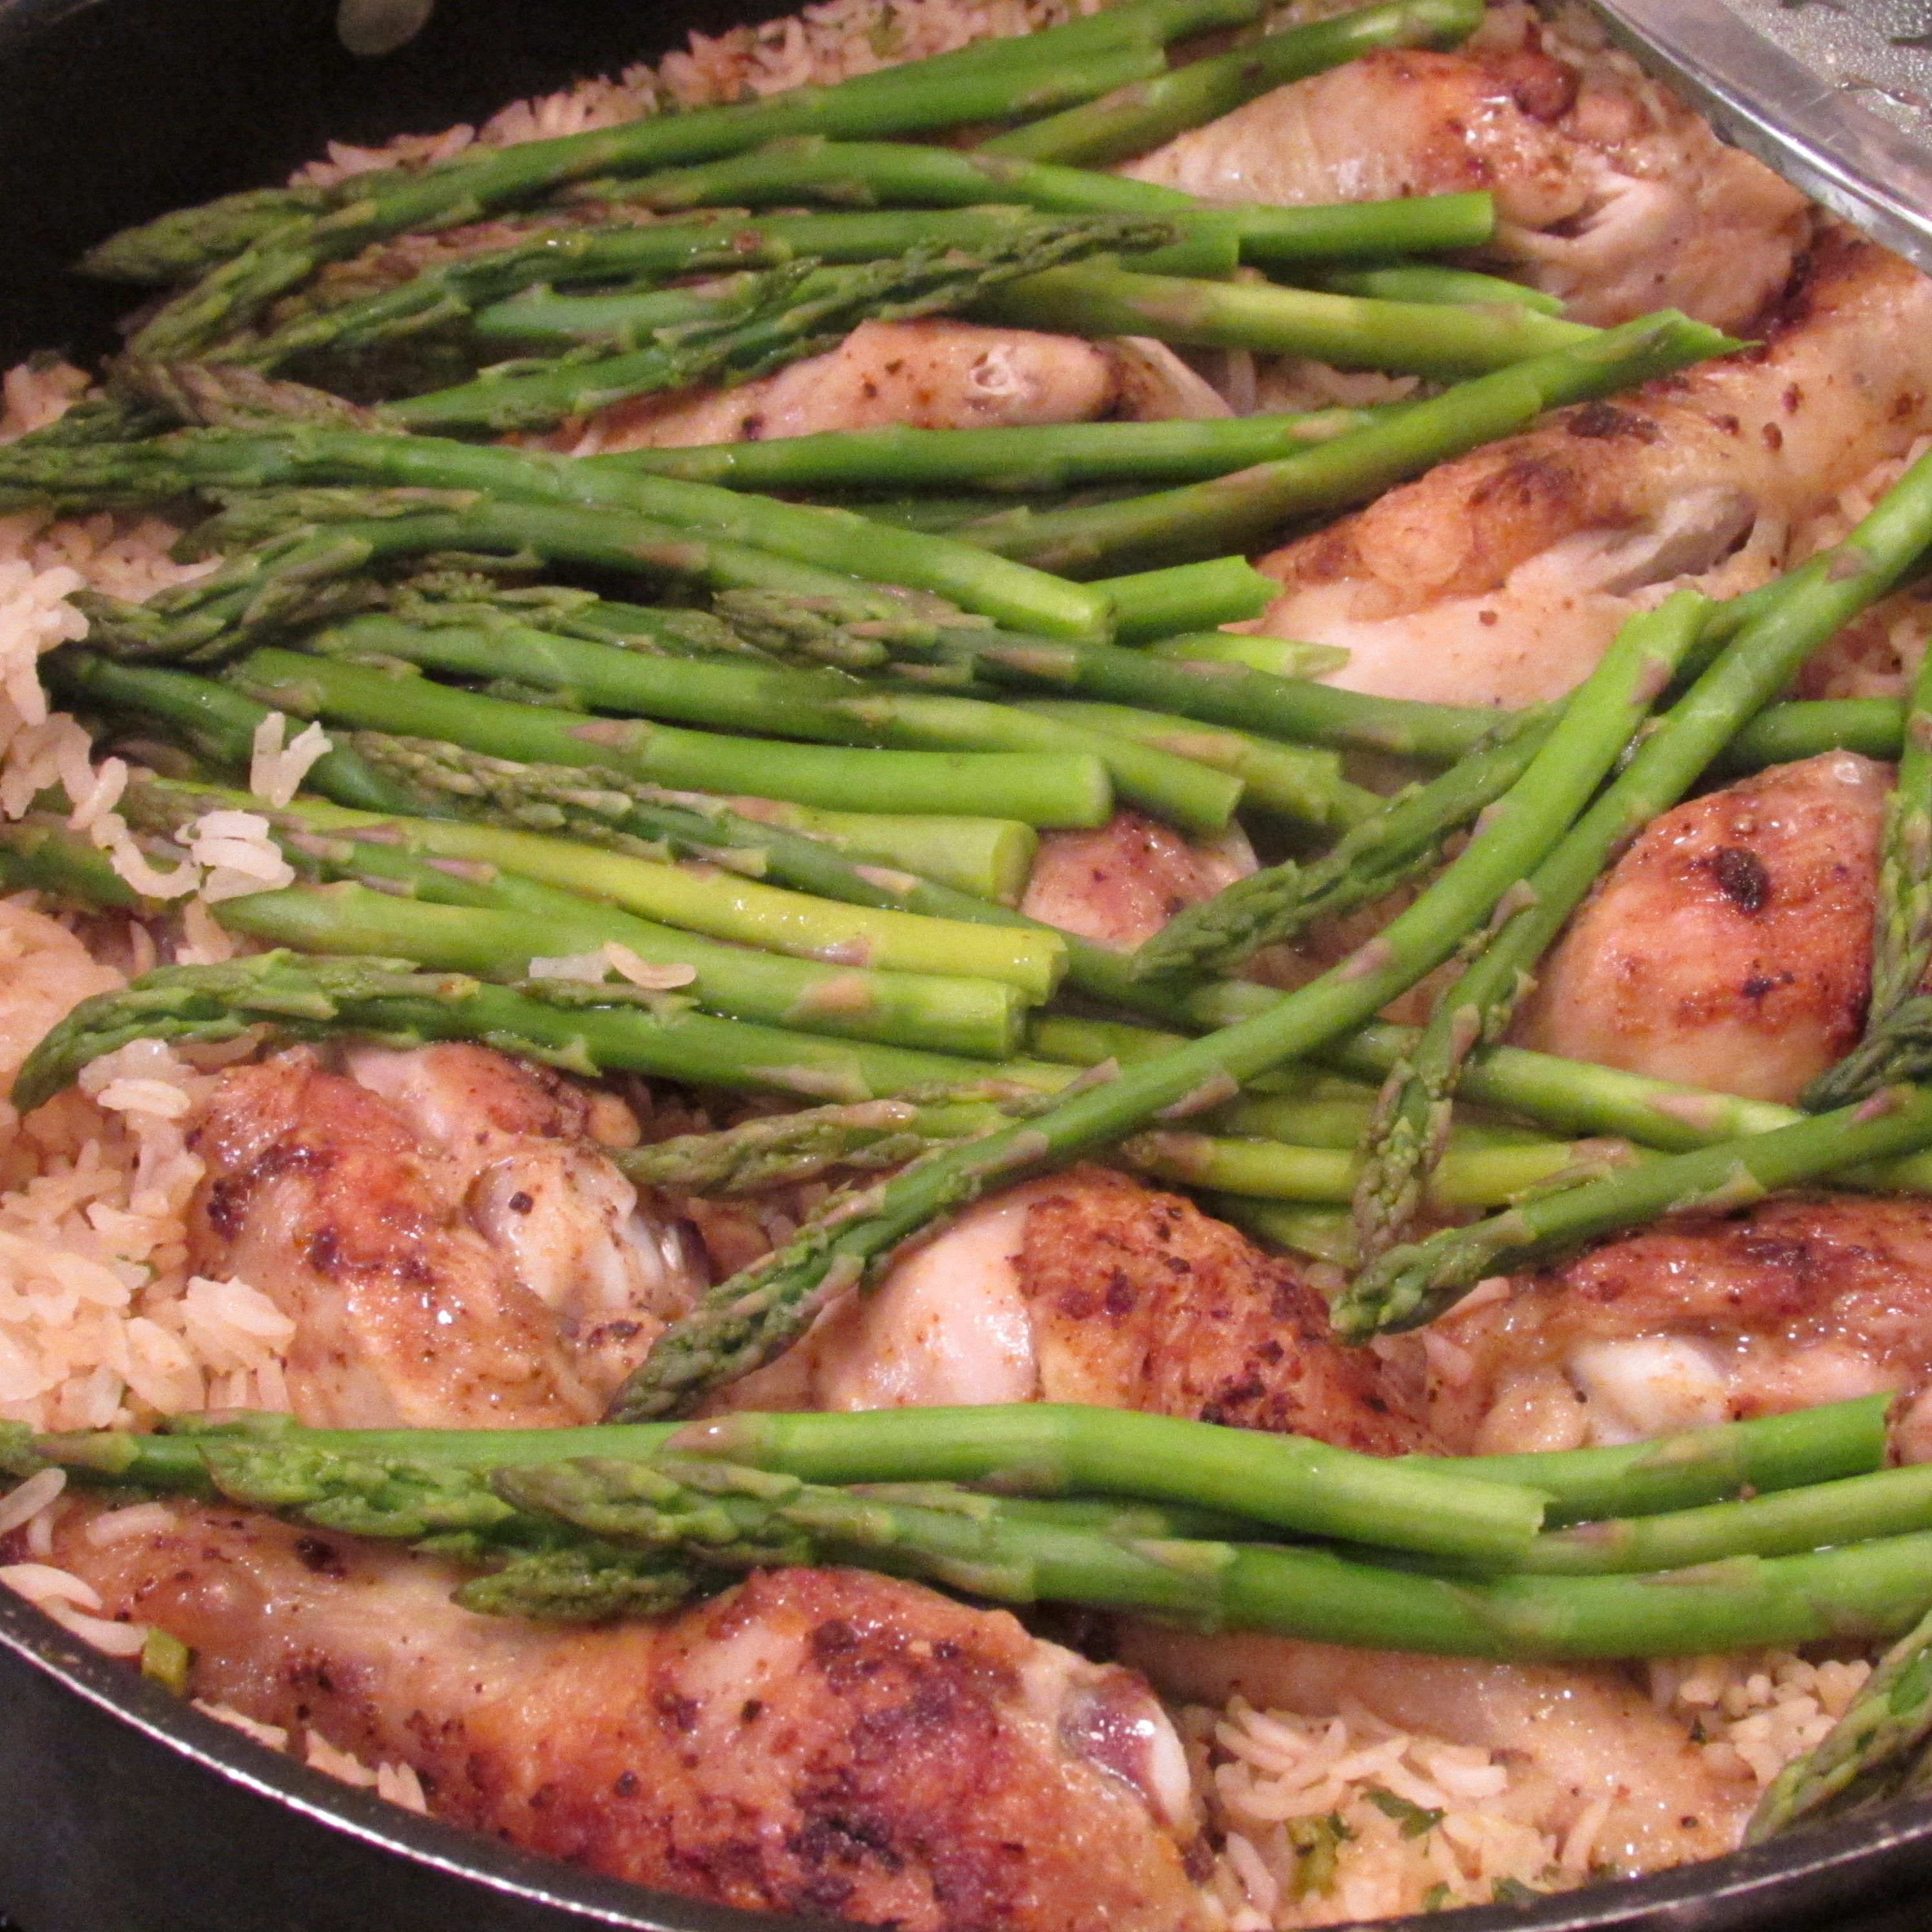 Taste Liquid And Adjust To Taste Put Drumsticks Back In Pan, Cover And Cook  For Around 40 Minutes During The Last 10 Minutes Of Cooking, Put Asparagus